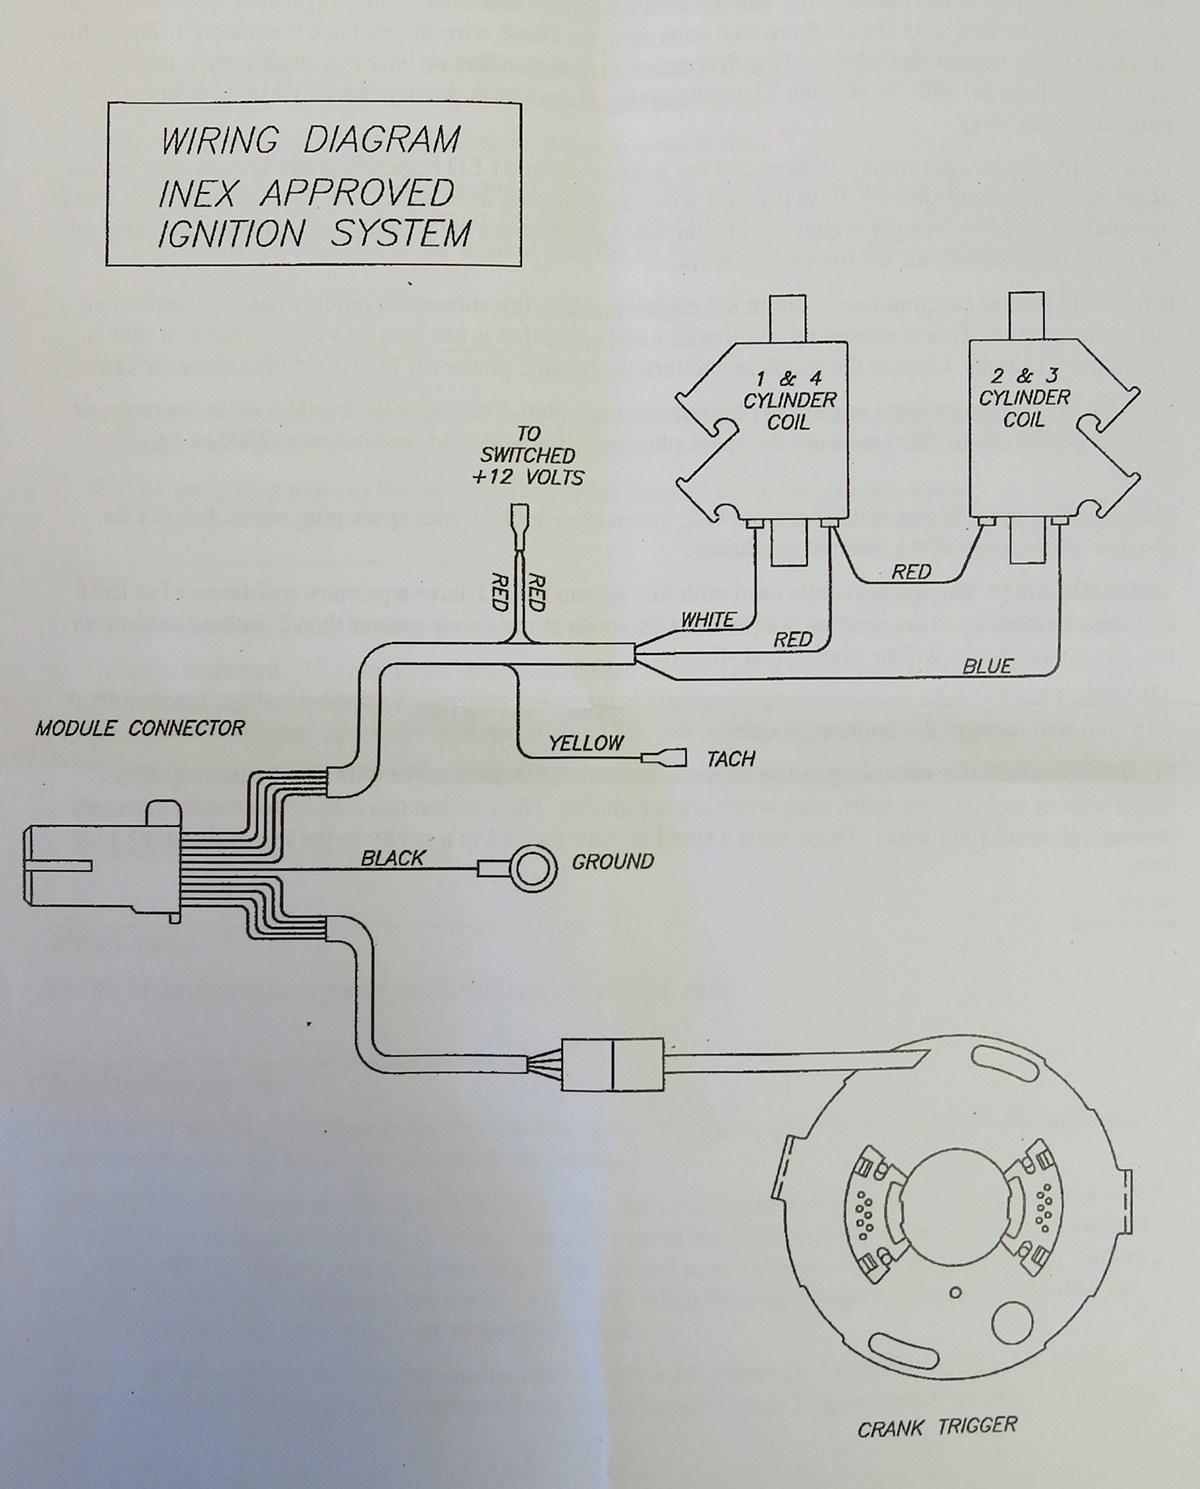 red box wiring diagram wiring diagram page red box wiring diagram [ 1200 x 1489 Pixel ]